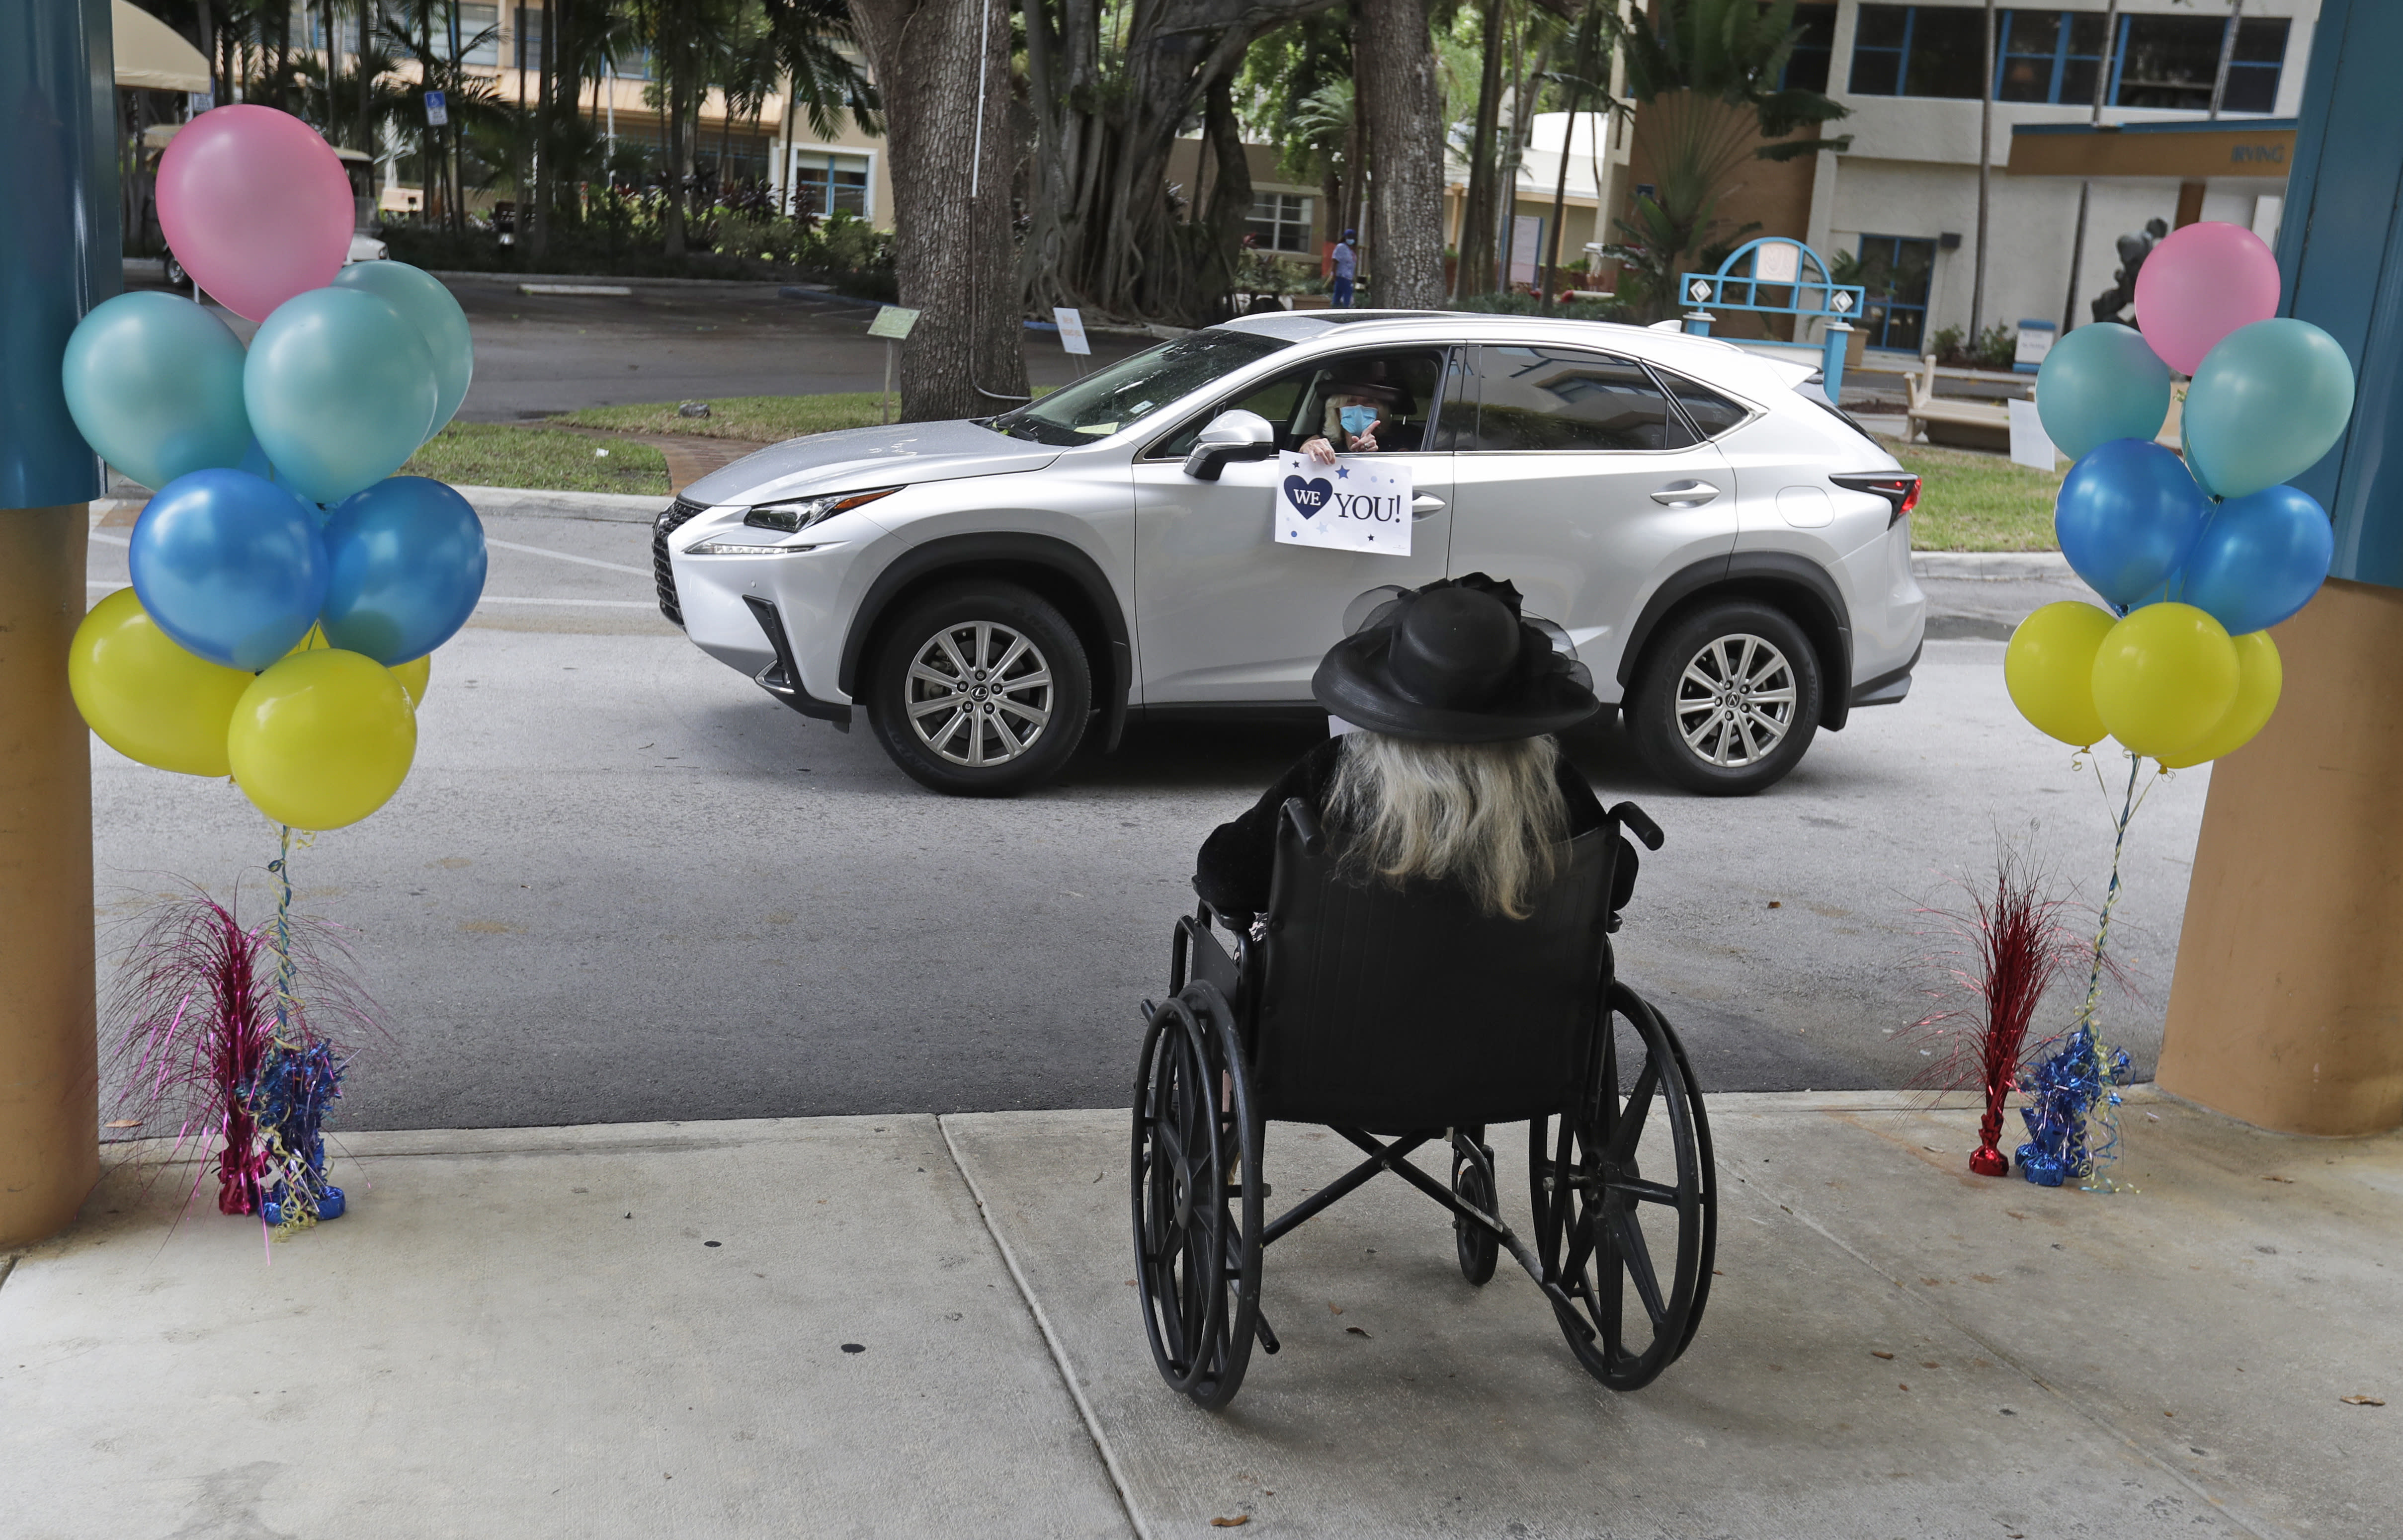 Frances Reaves, in car, pays a visit to her friend Margaret Choinacki, foreground, 87, who has no other family members left because her husband and daughter have died, Friday, July 17, 2020, at Miami Jewish Health in Miami. Miami Jewish Health has connected more than 5,000 video calls and allowed drive-by visits where friends and family emerge through sunroofs to see their loved ones. (AP Photo/Wilfredo Lee)